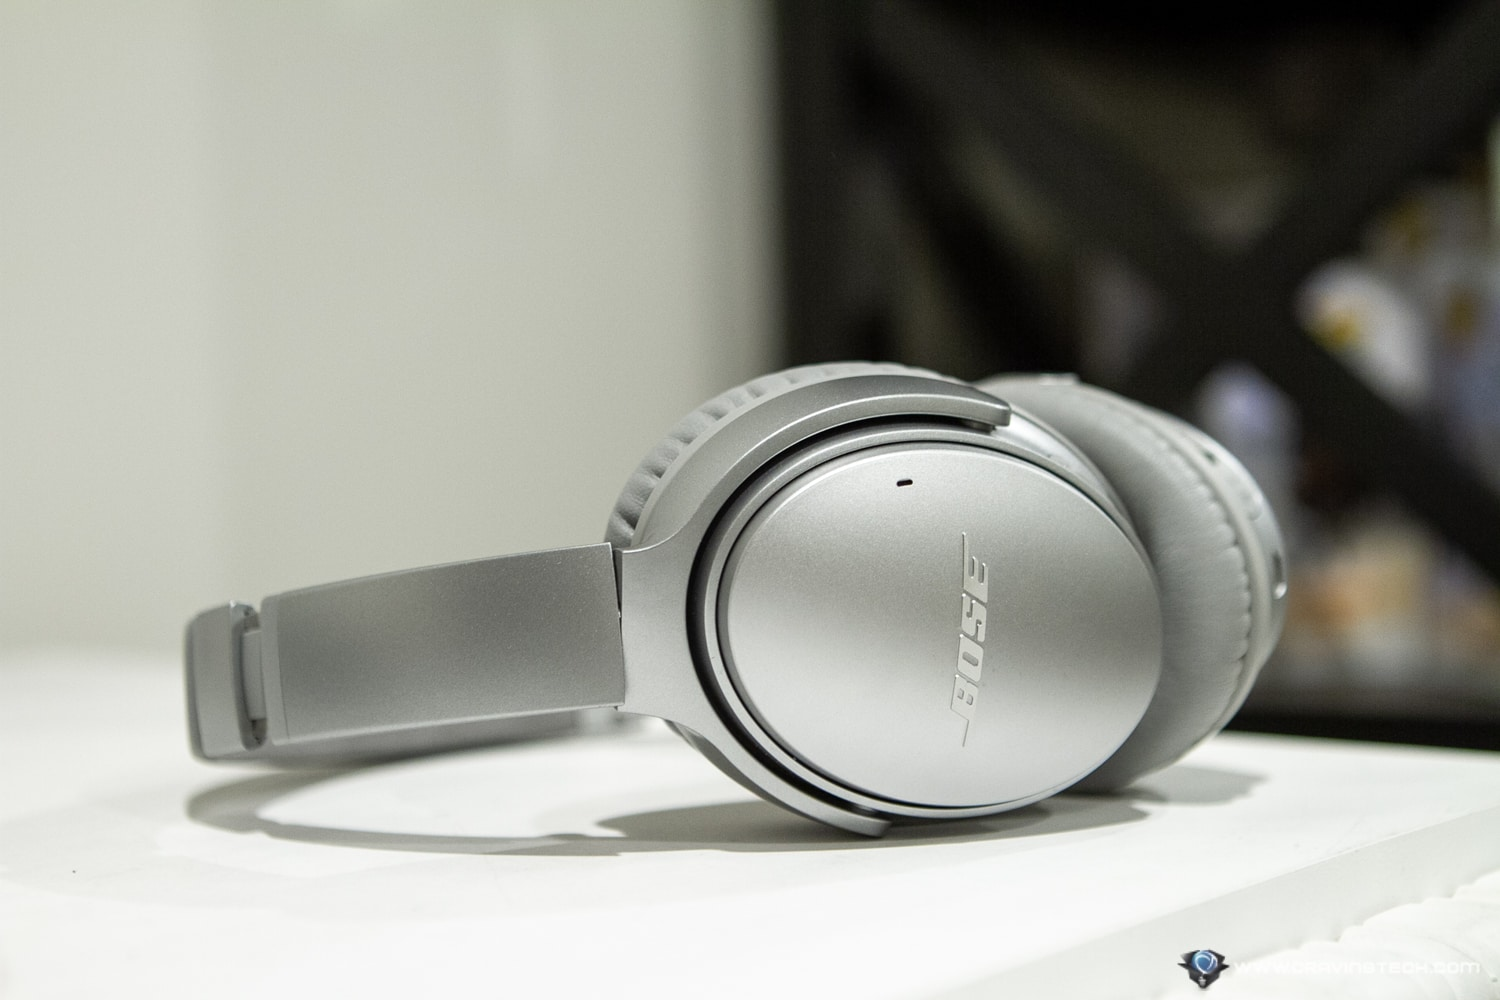 Bose QC35 II Review - Design